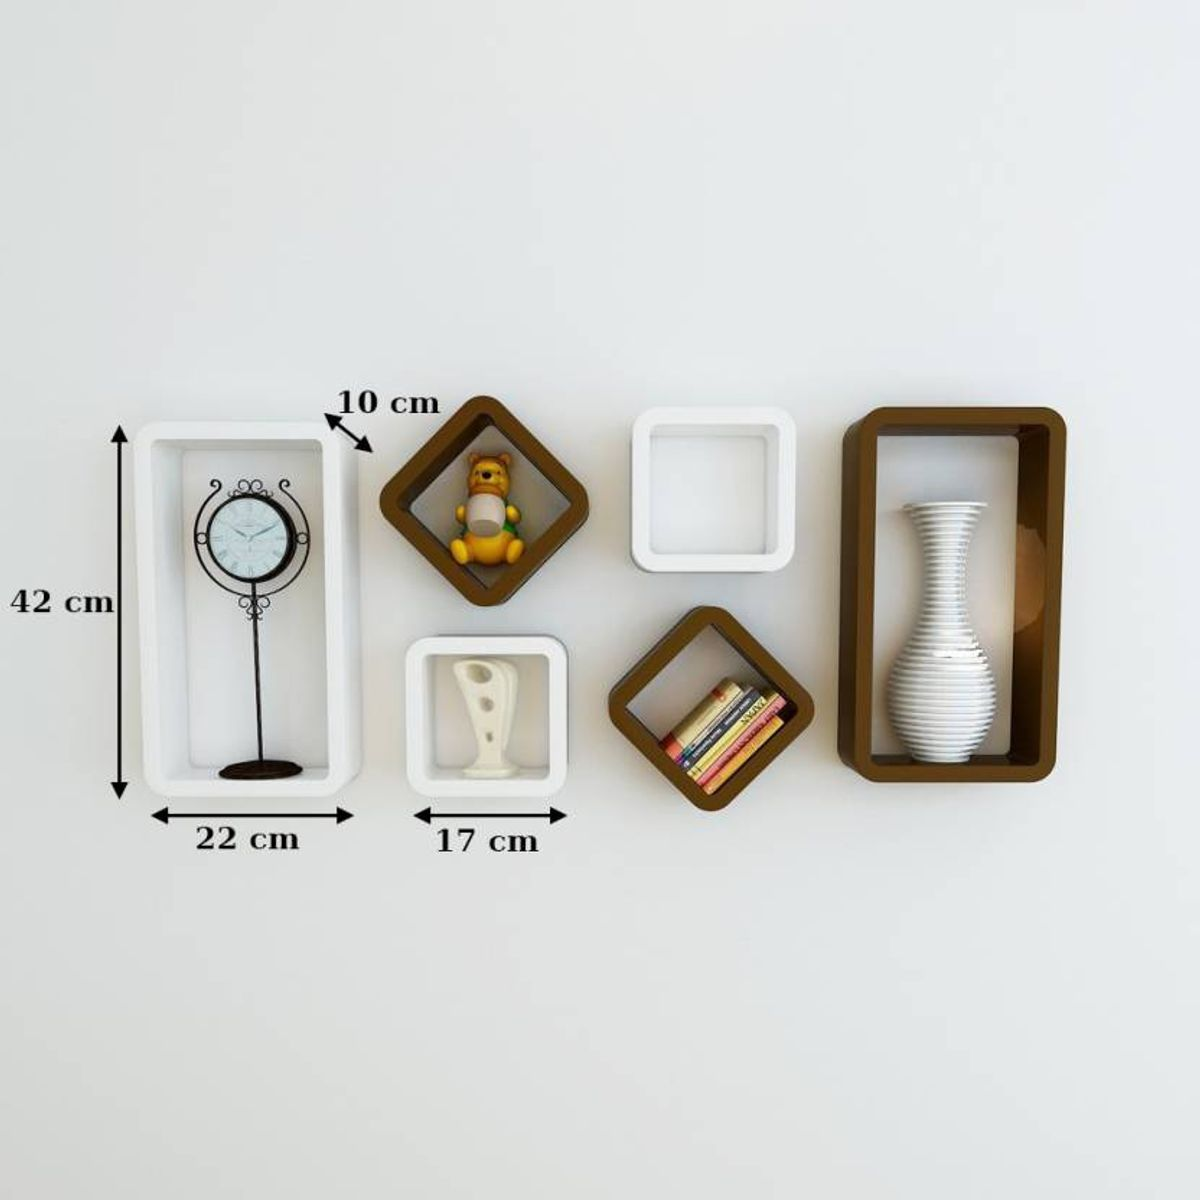 Decorasia Wooden White  Brown Cube Wall Shelf Set Of 6 - Size 42 X 22 X 10 Cm